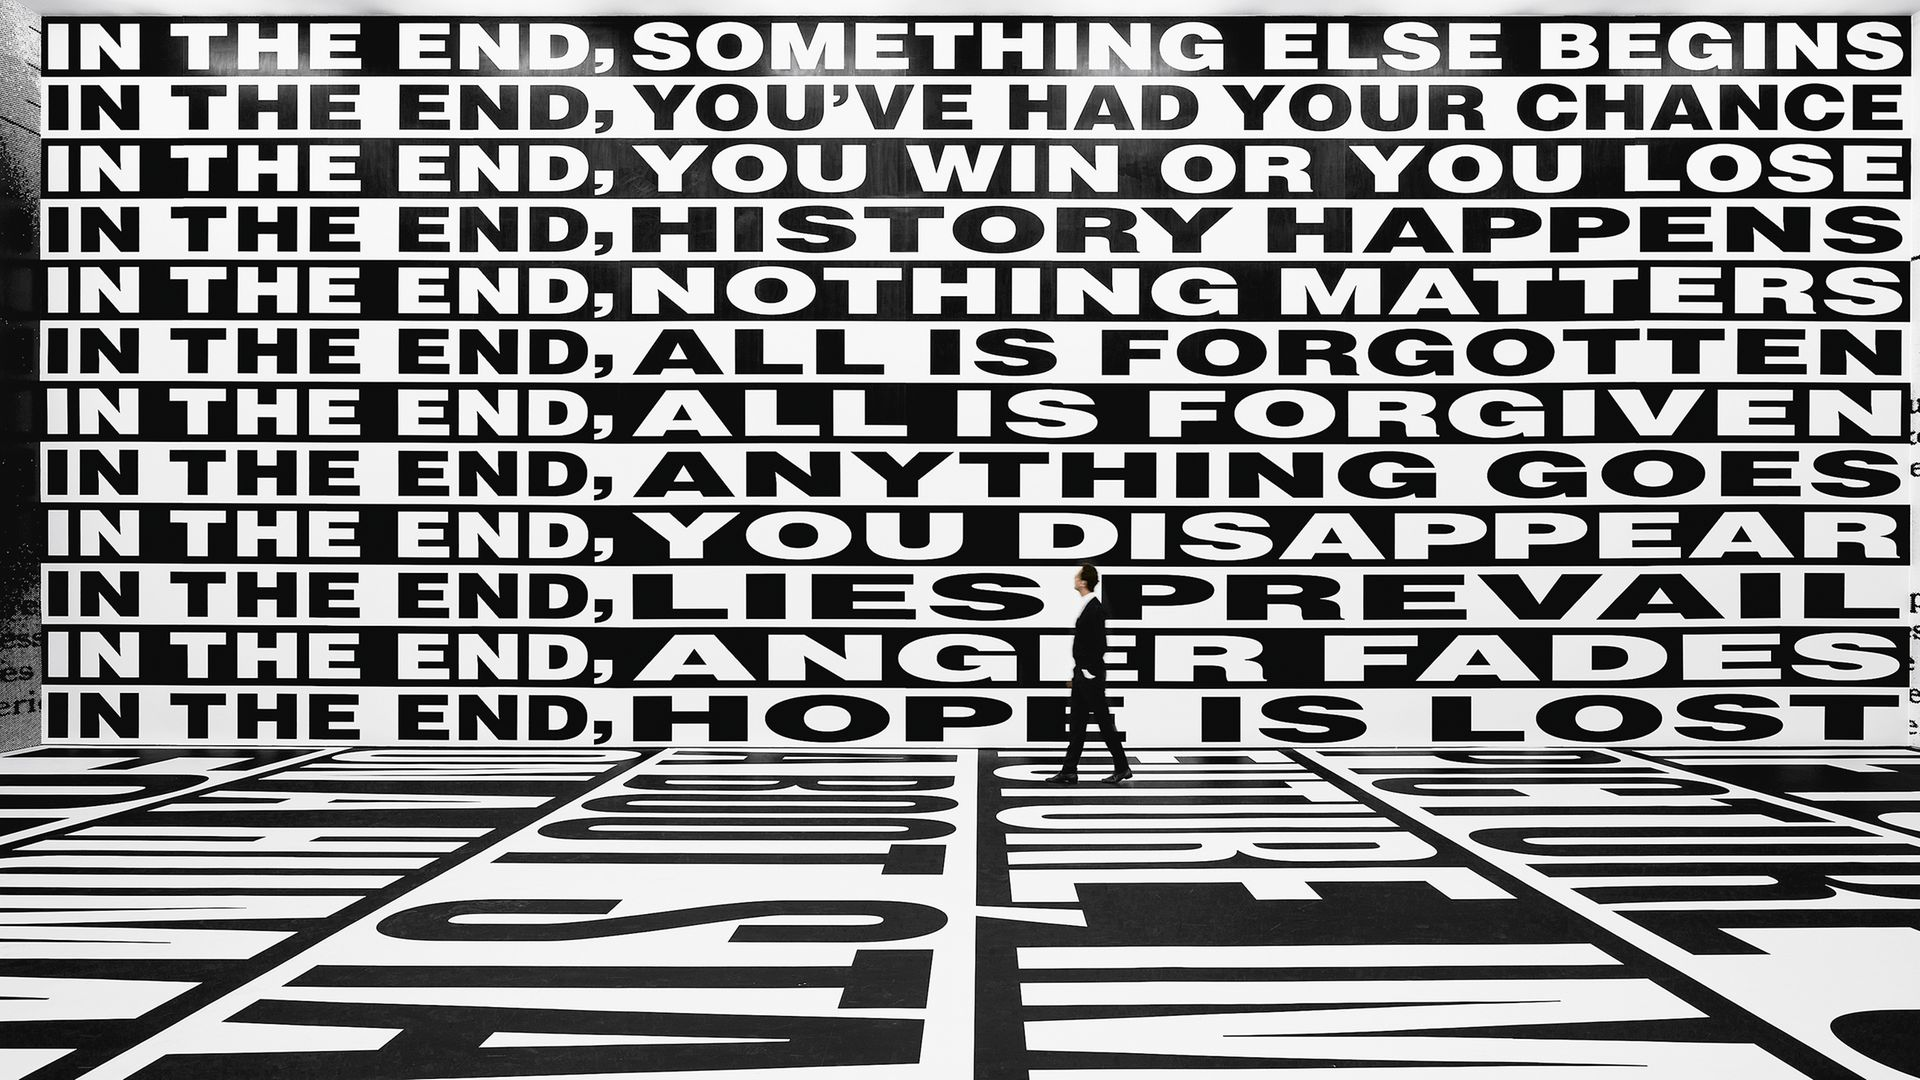 Barbara Kruger. Untitled (Forever), 2017. Installation view, Sprüth Magers, Berlin, 2017–18. Amorepacific Museum of Art (APMA), Seoul. © Barbara Kruger. - Credit: Photo by Timo Ohler and courtesy of Sprüth Magers.